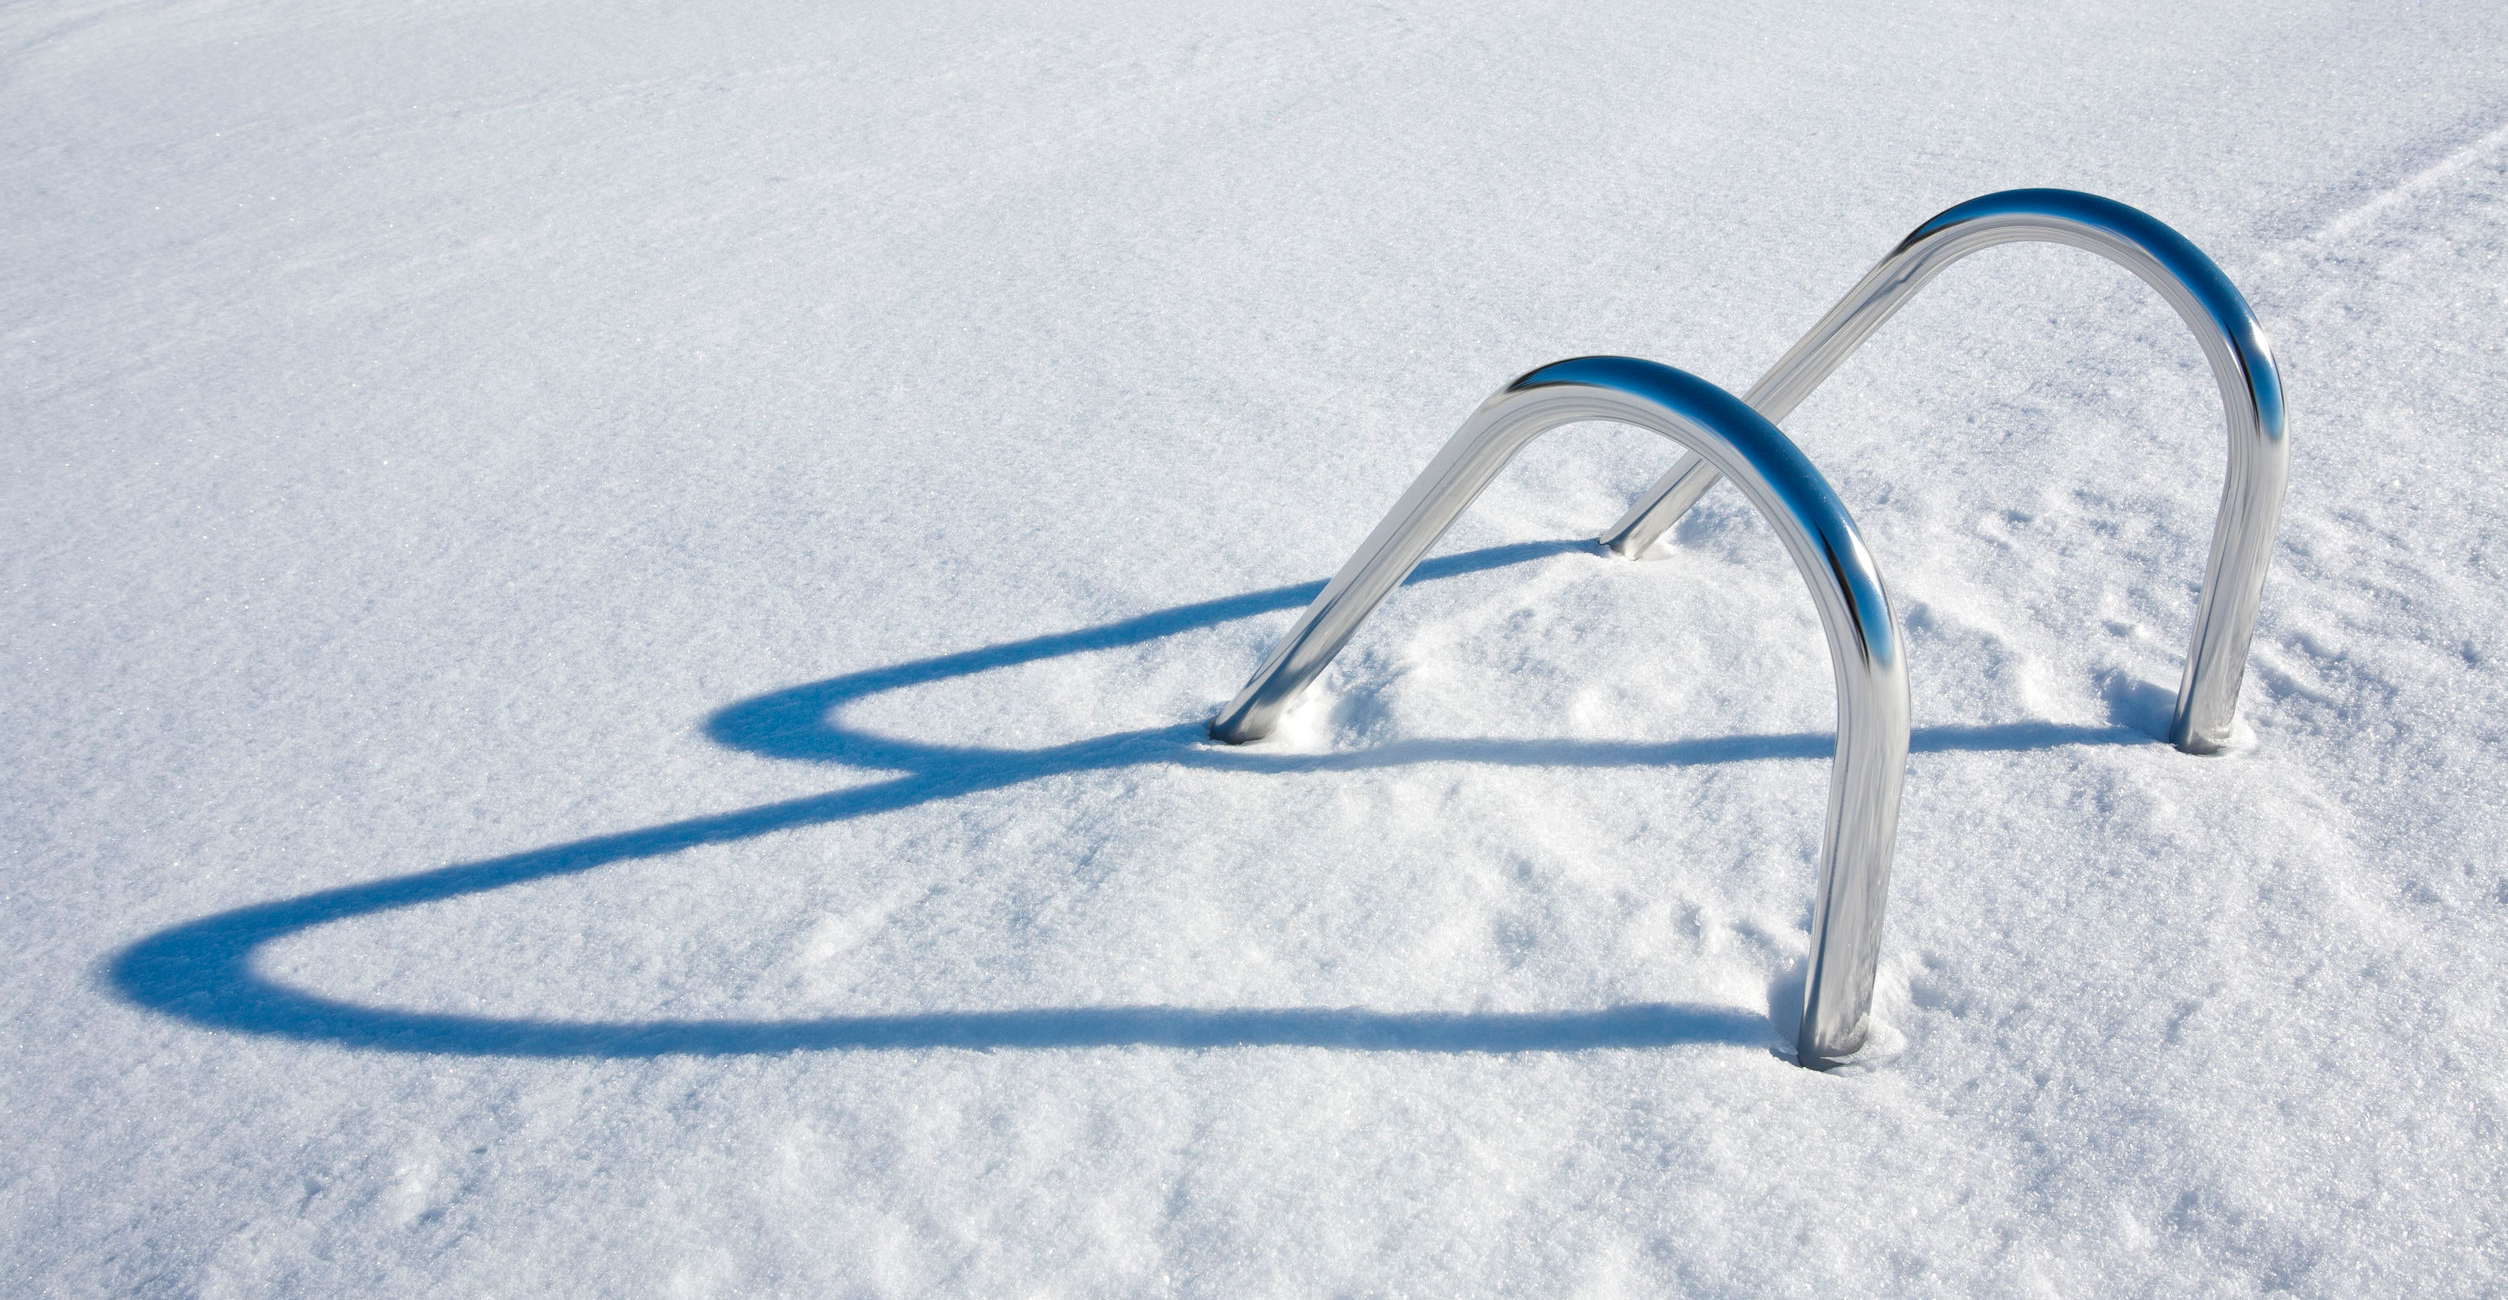 Swimming Pool Hand Rails in snow